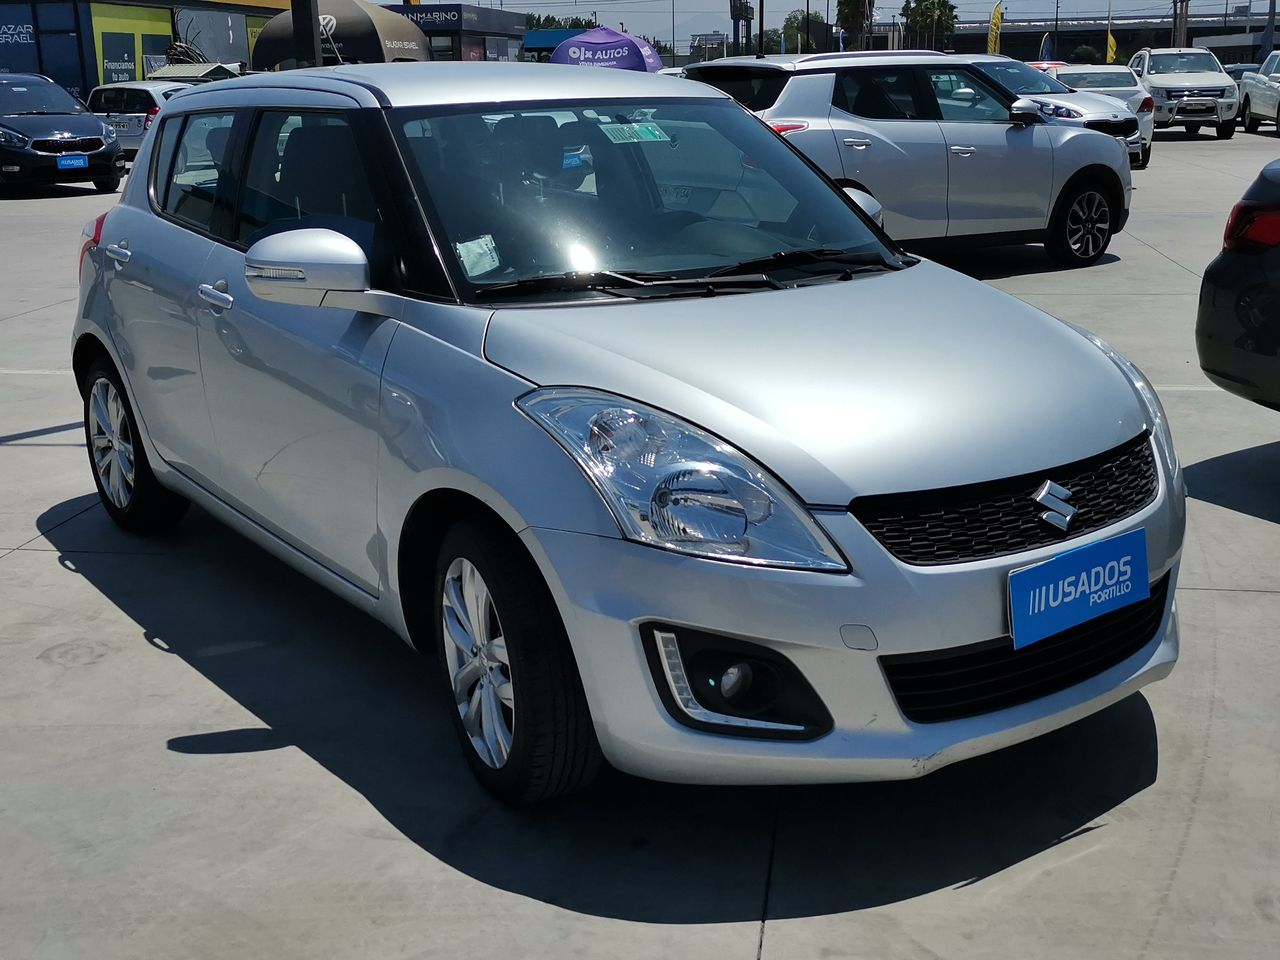 Suzuki Swift Glx 1.2 2017  Usado en Automotriz Portillo